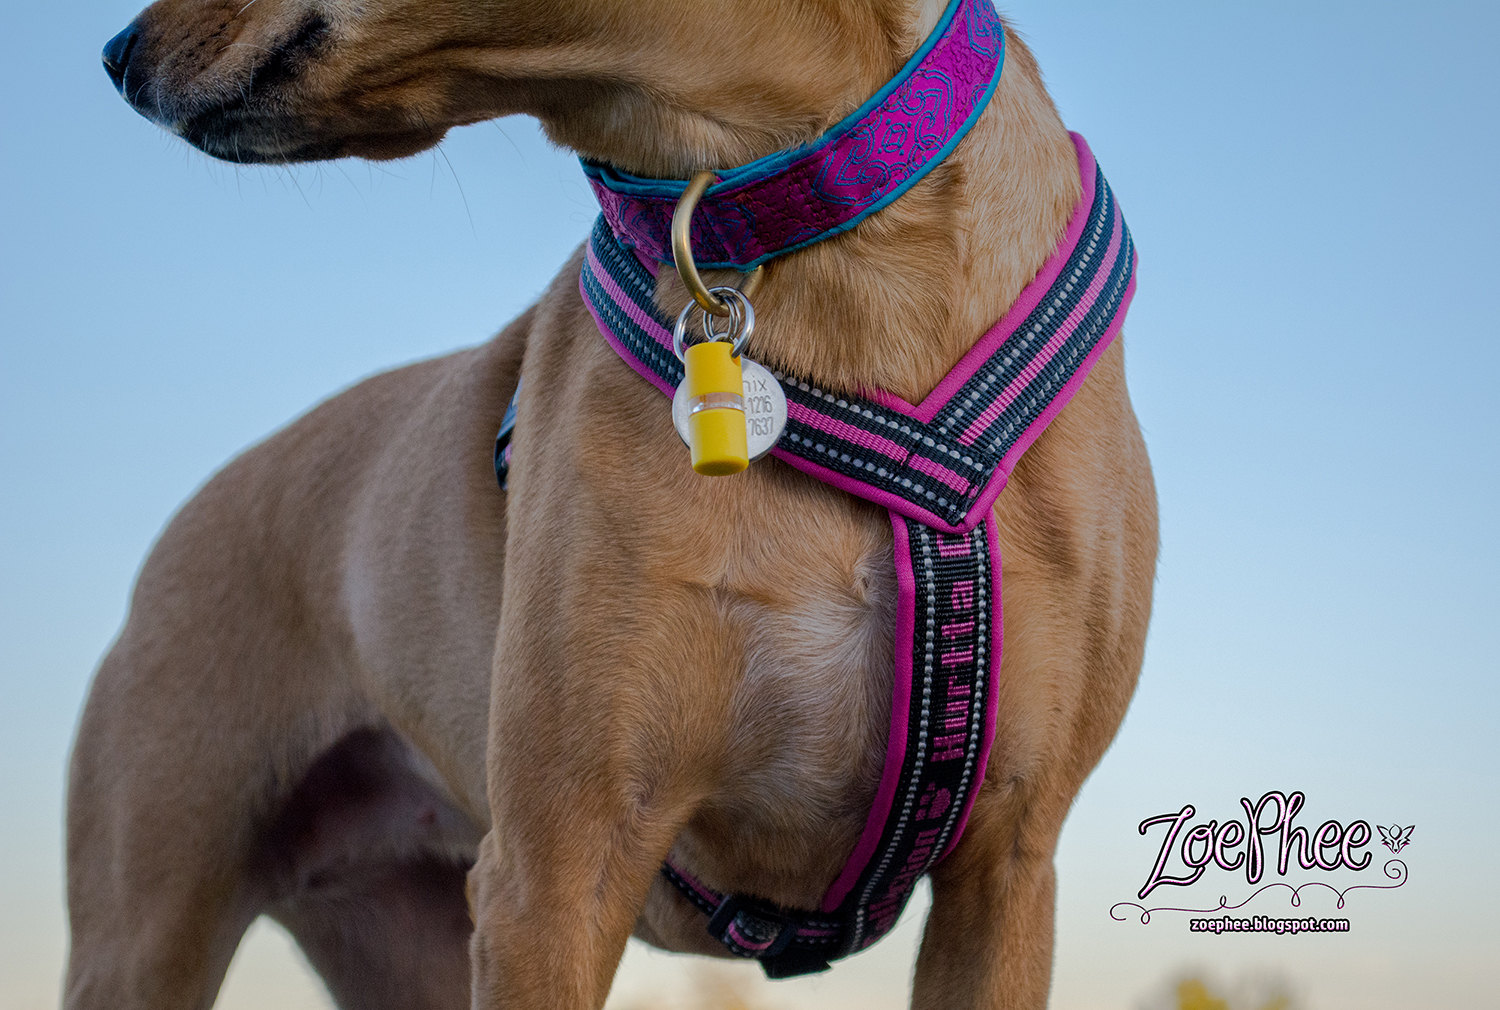 ZoePhee: To The Woman Who s Dog Harnesses